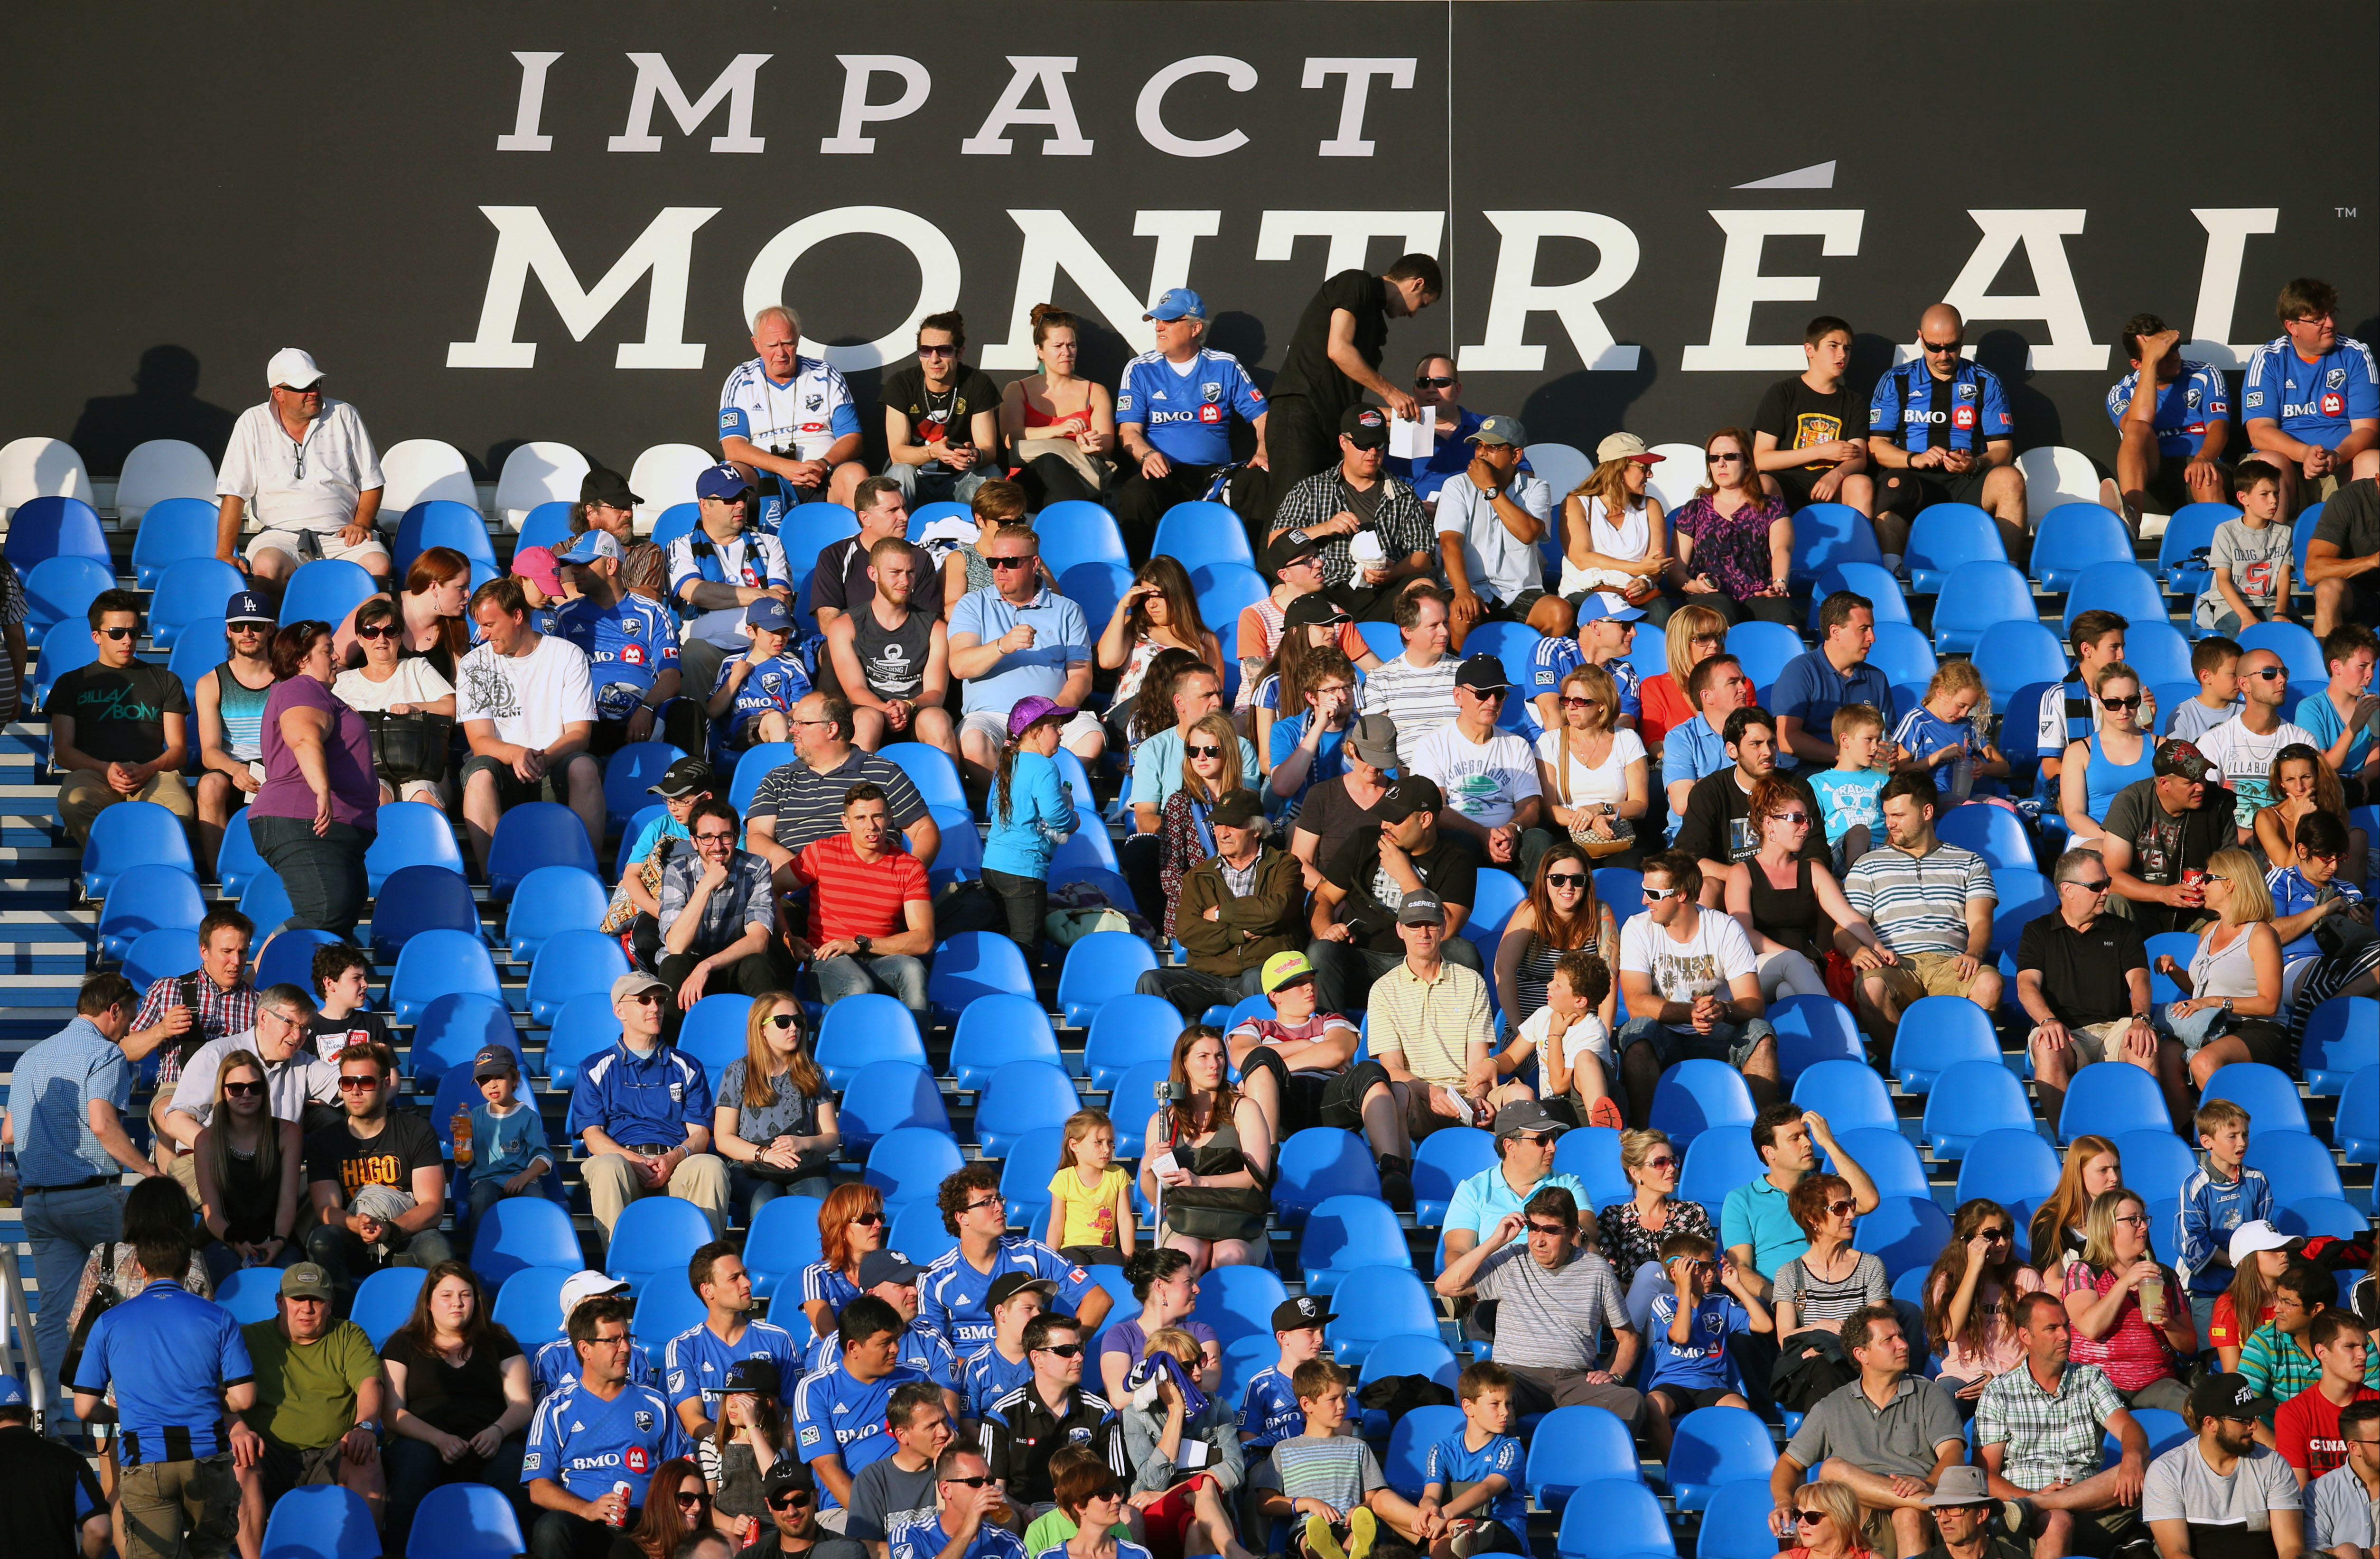 A shot of the fans at Stade Saputo, where IMFC have been more successful this season.